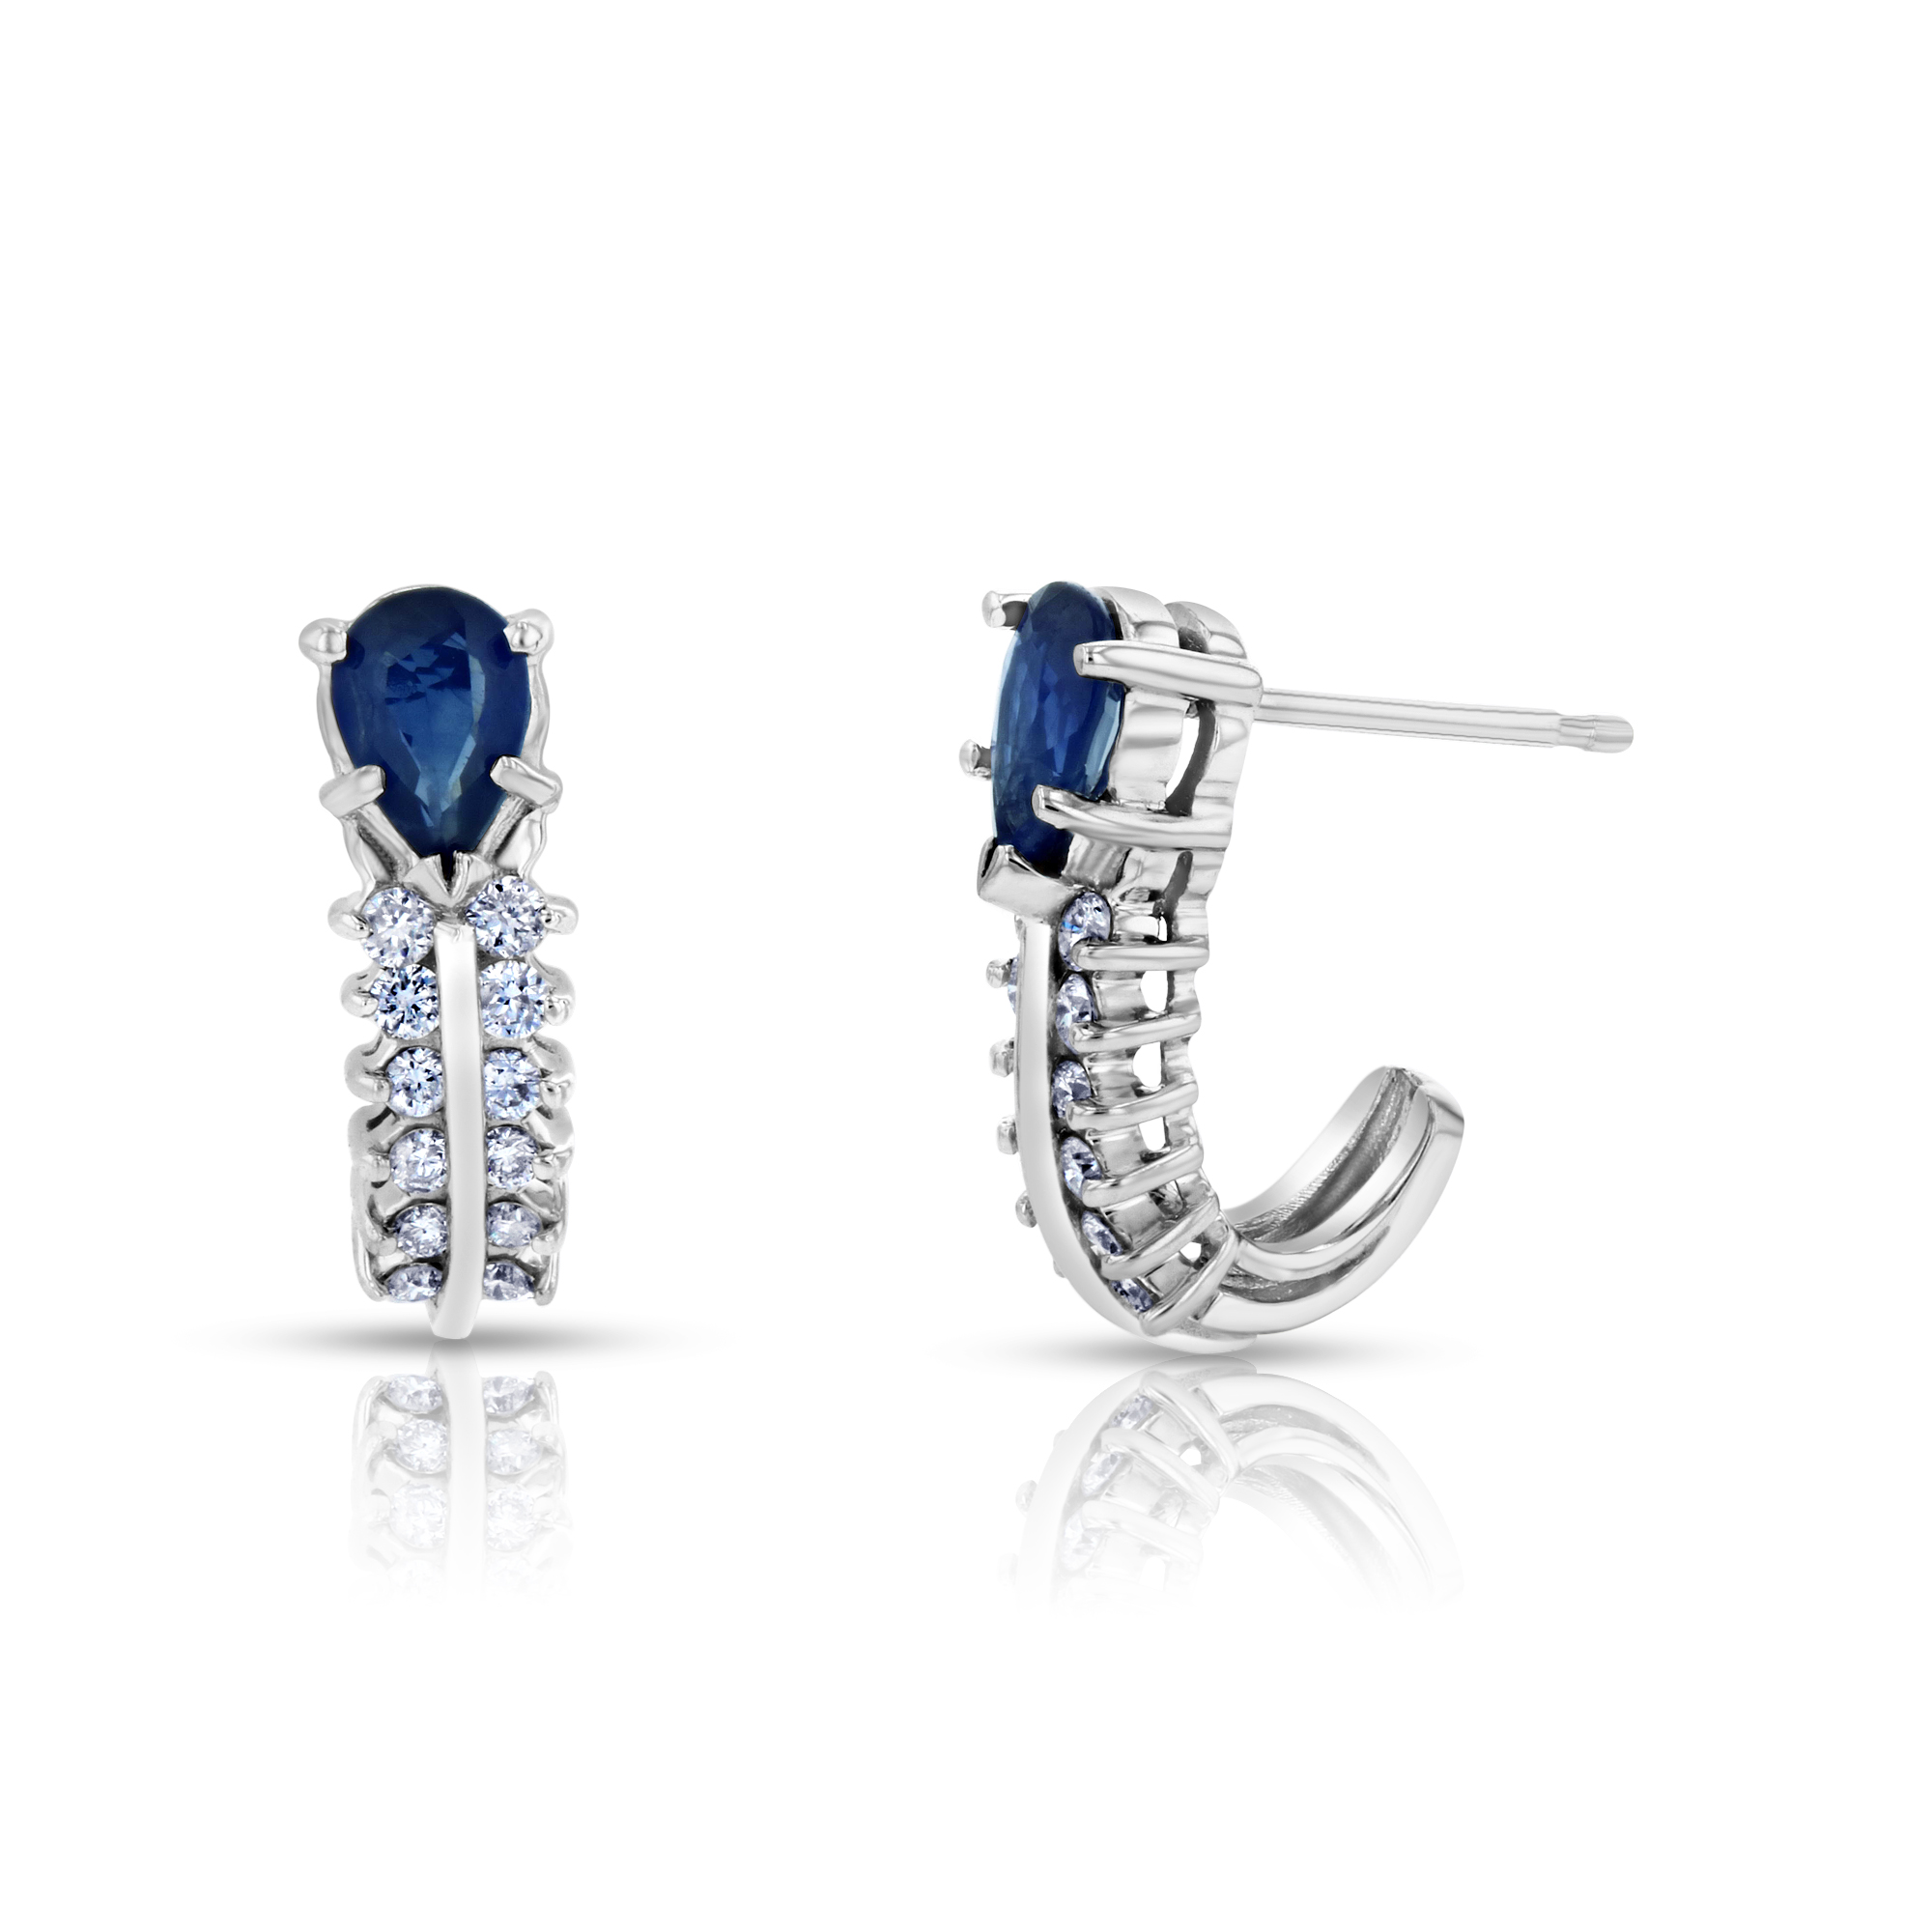 View 0.30ctw Diamonds and Sapphire Earrings in 14k White Gold